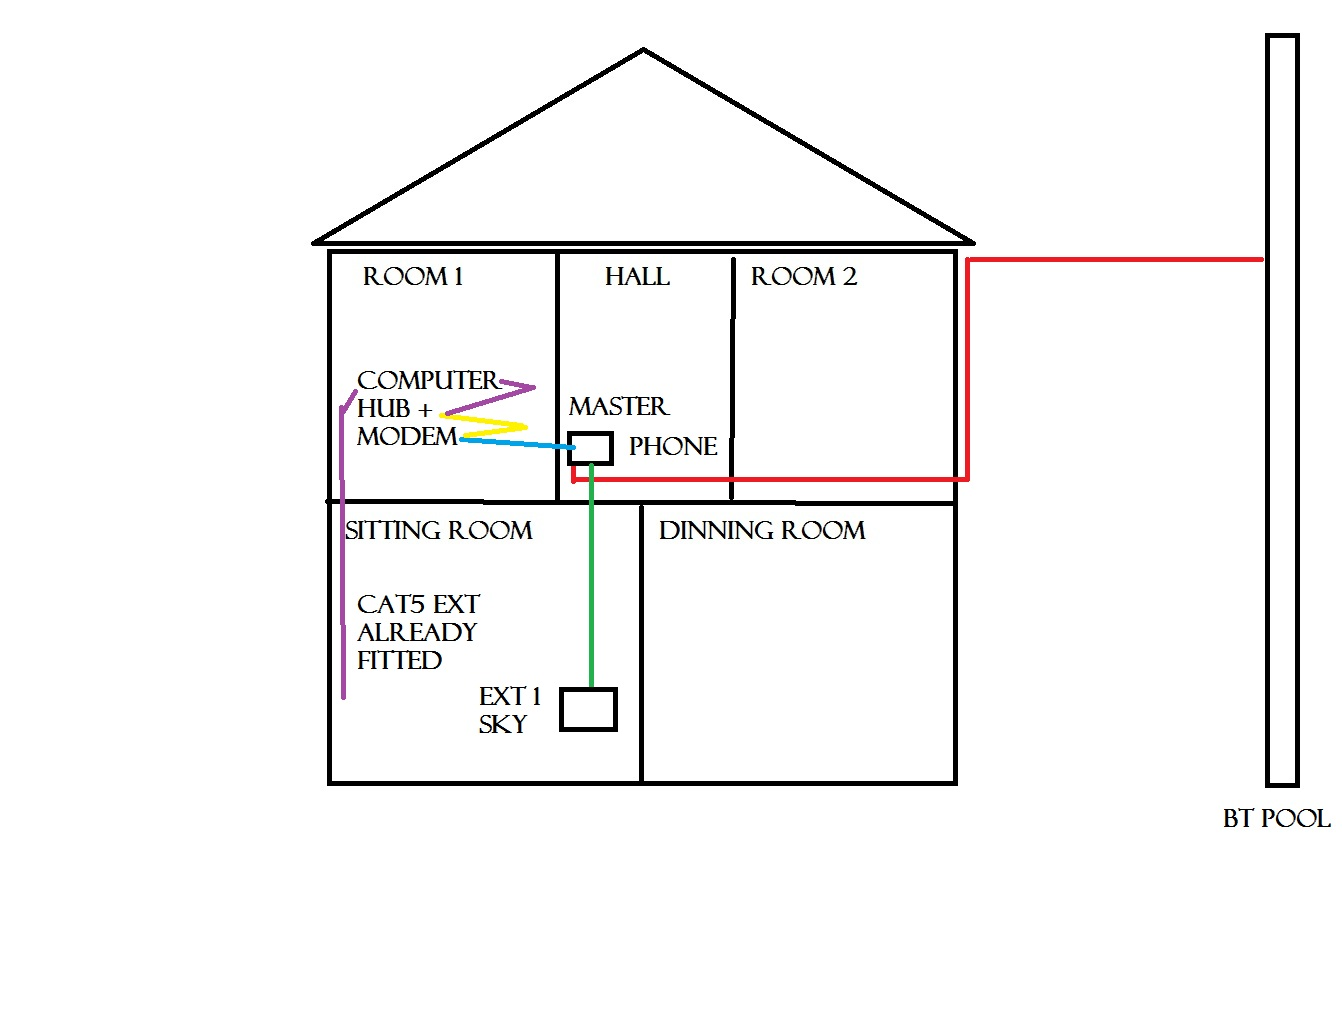 bt infinity need help on how the bt enginer will bt community bt infinity 2 wiring diagram [ 1342 x 1022 Pixel ]